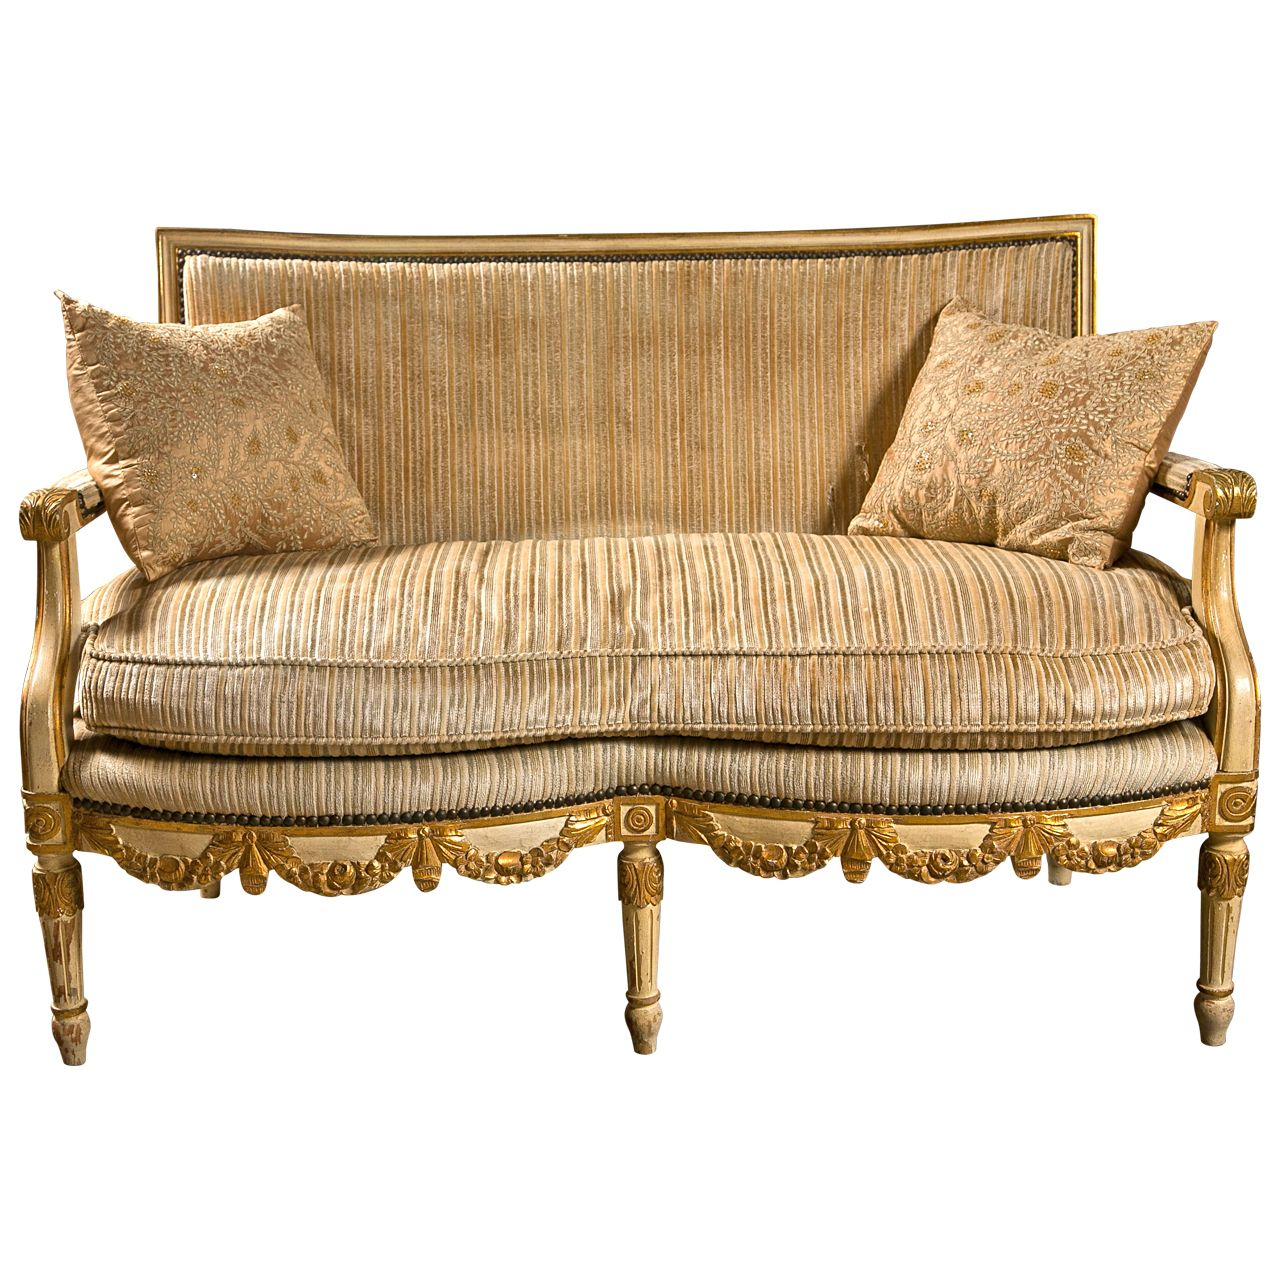 French louis xiv style canape sofa settee muebles for Muebles de epoca